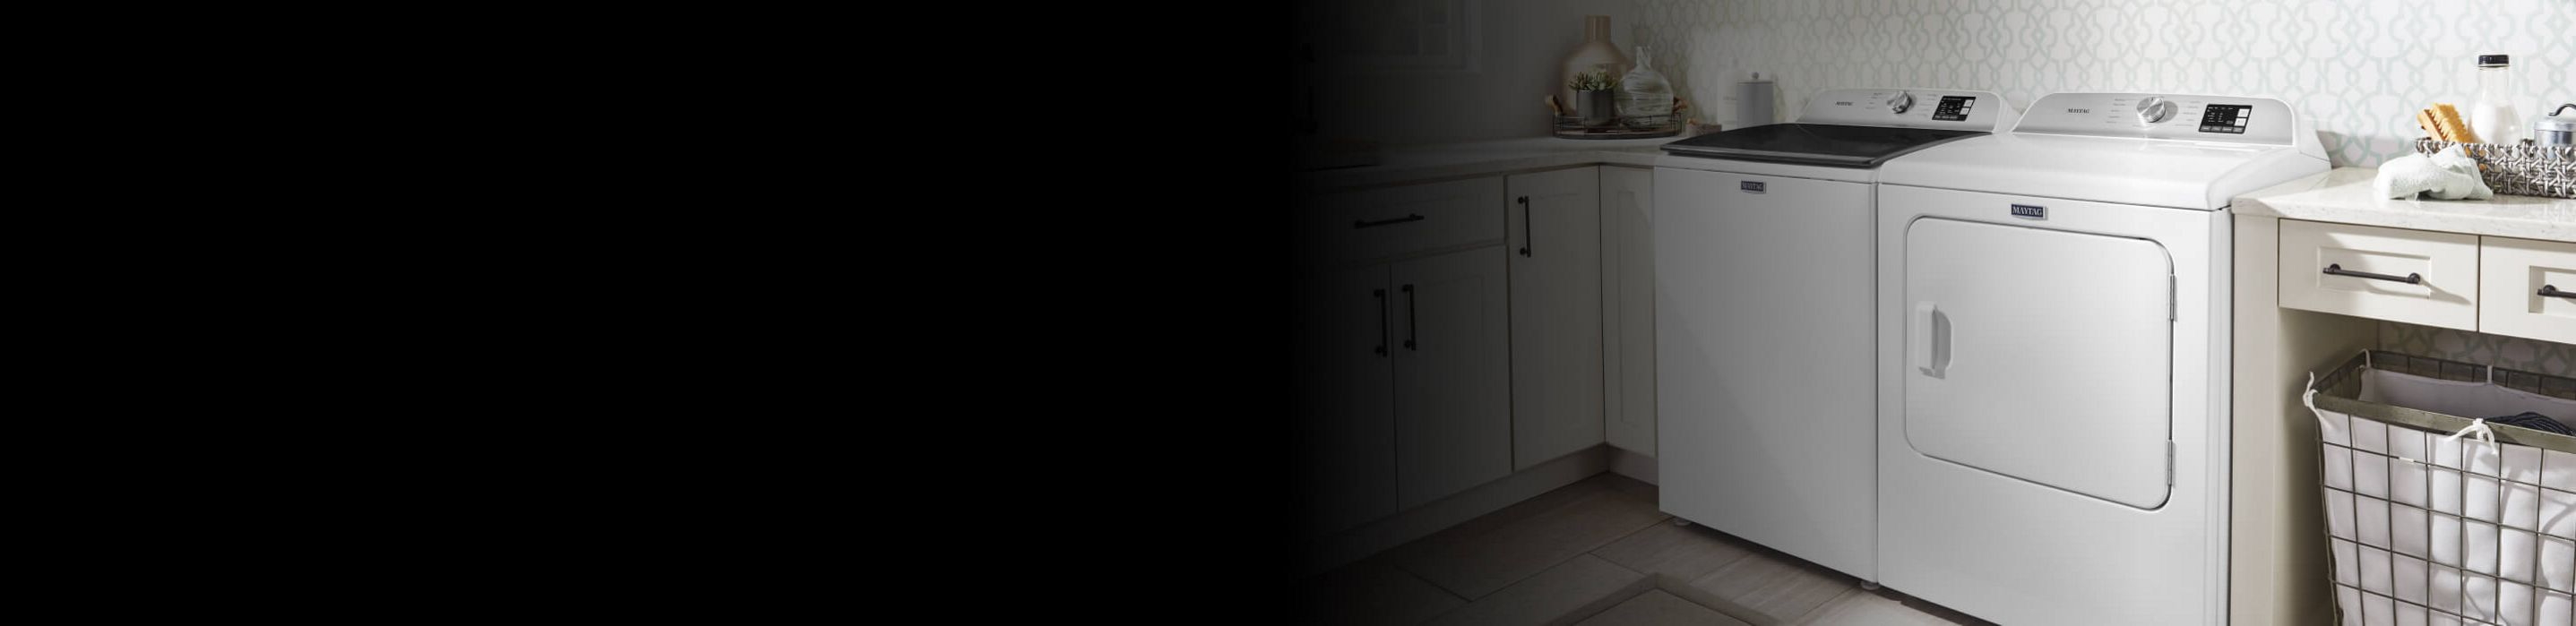 White Maytag® washer and dryer pair in laundry room.